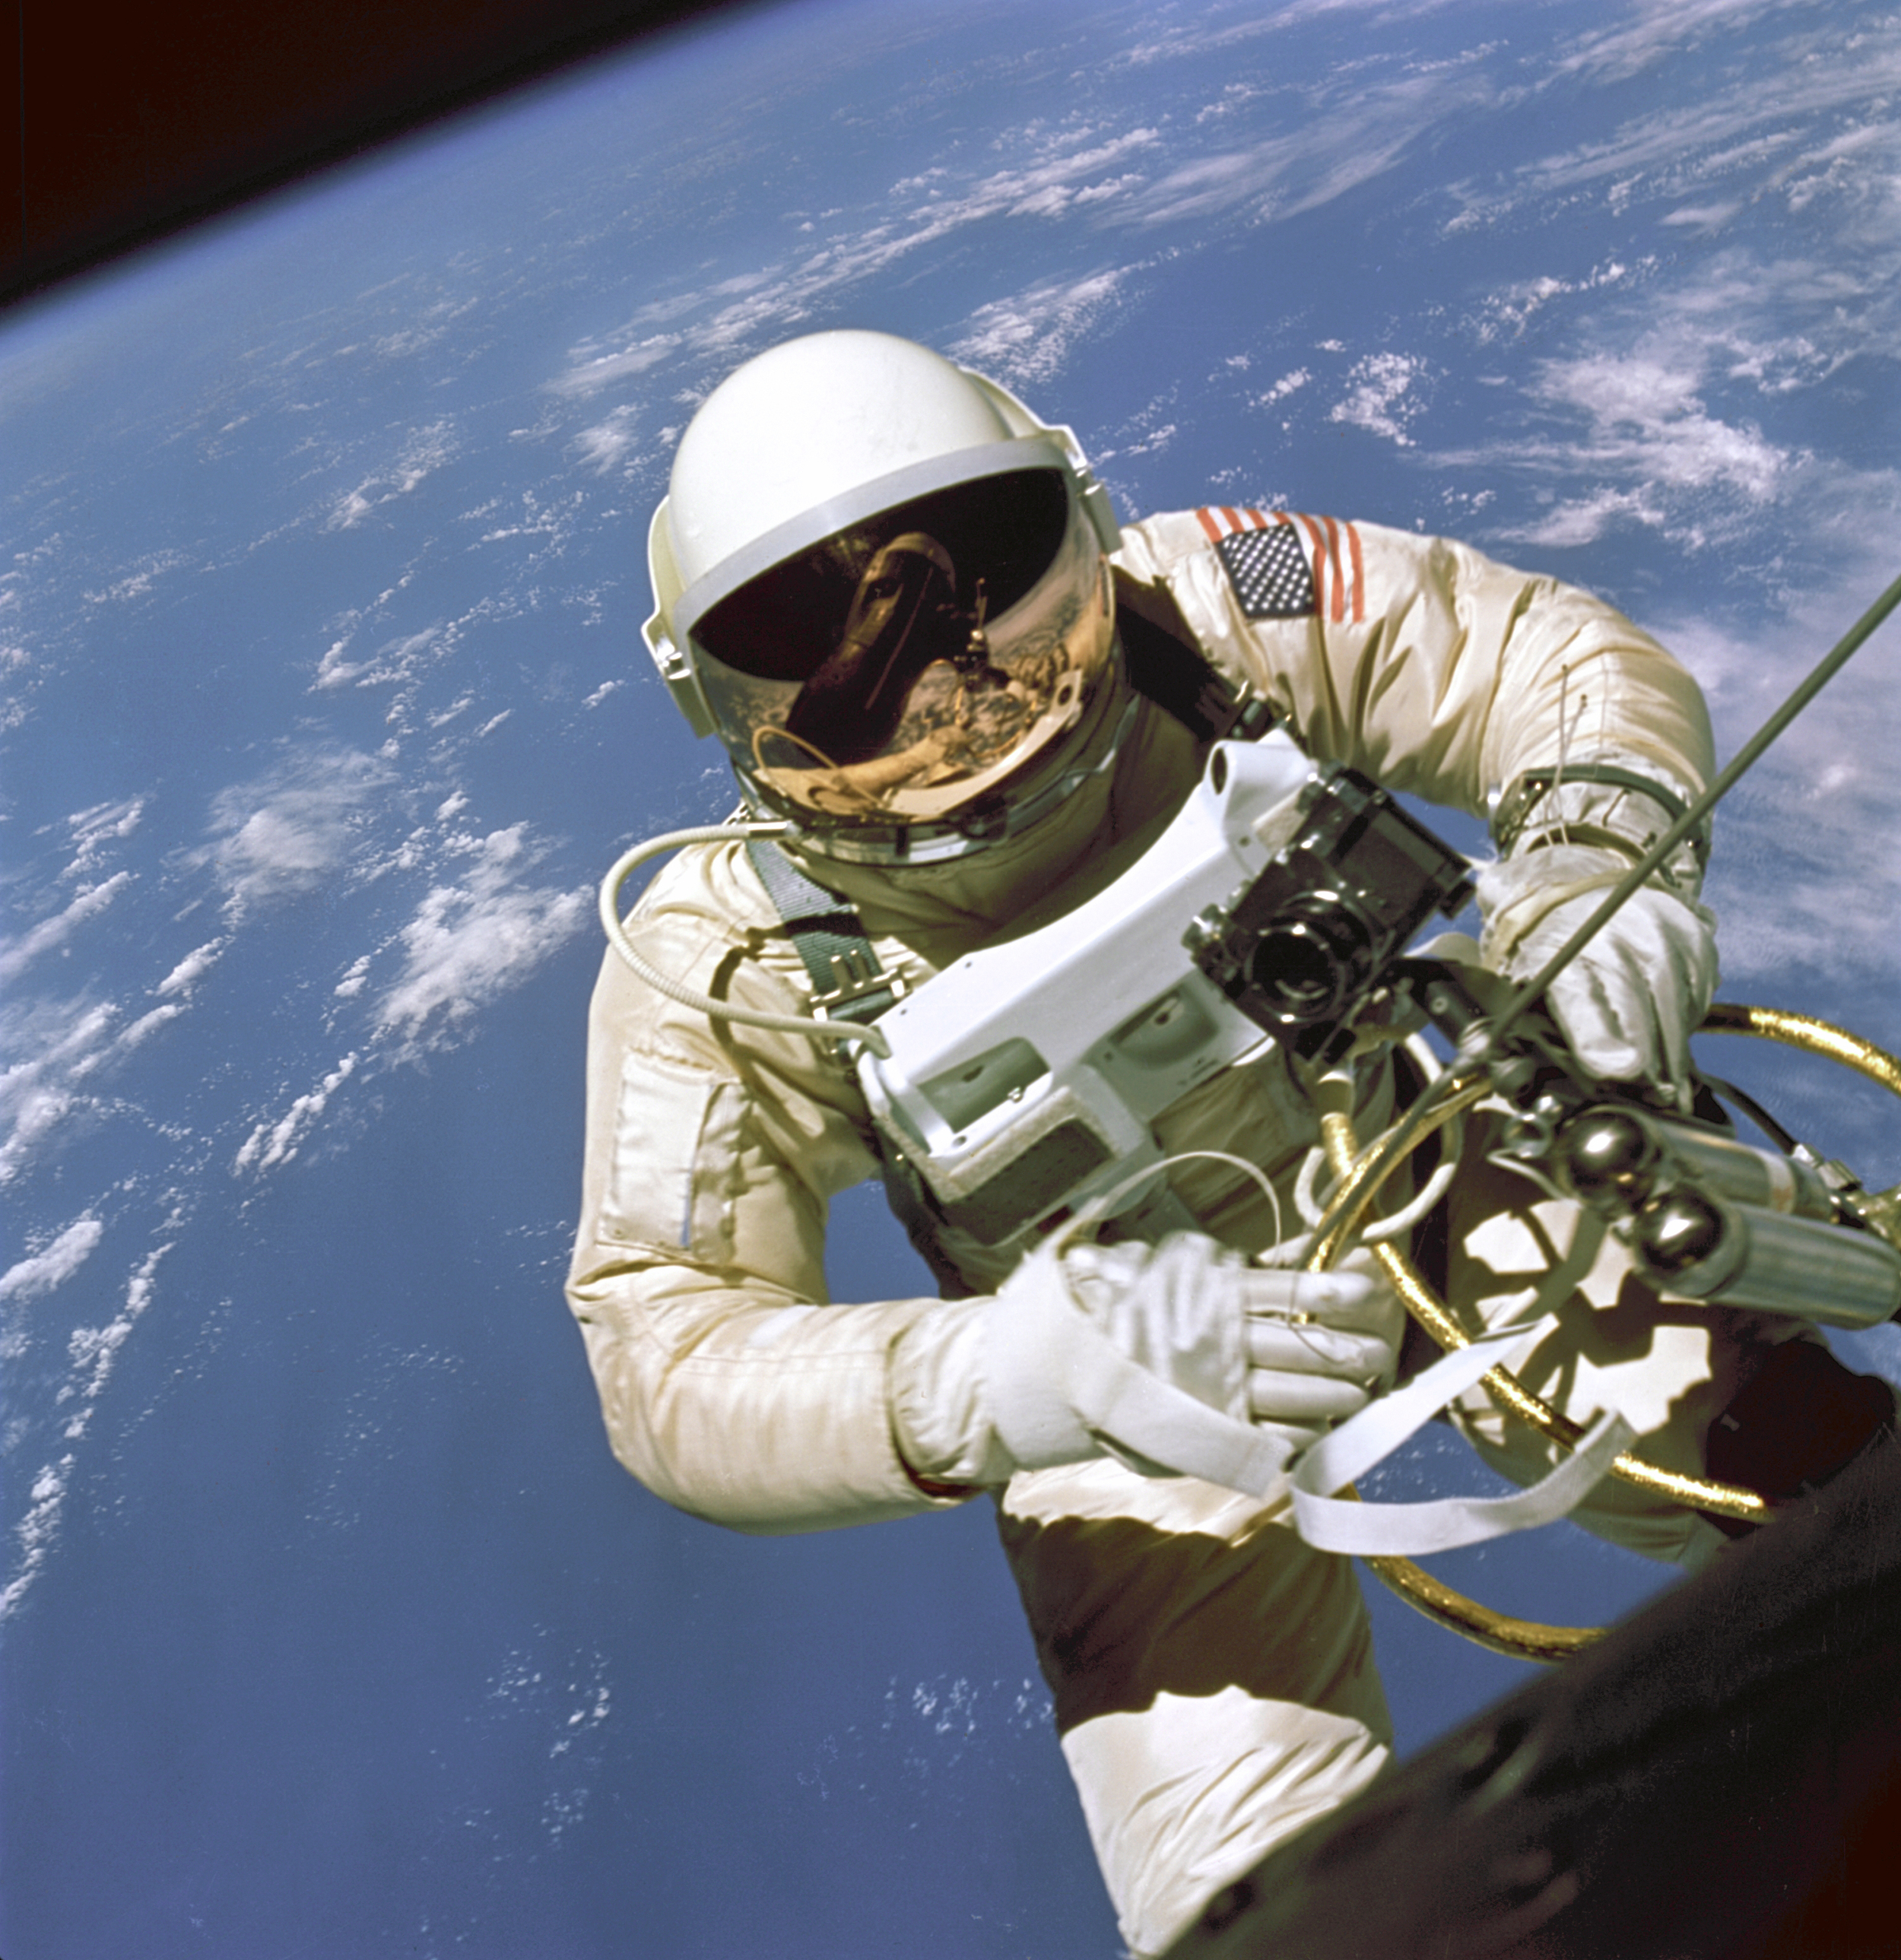 A famous image of astronaut Ed White's space walk on Gemini 4. If you look closely at the visor, you can see the reflection of the Gemini space capsule, the open hatch, and Jim McDivitt's image, snapping this picture through the capsule window.